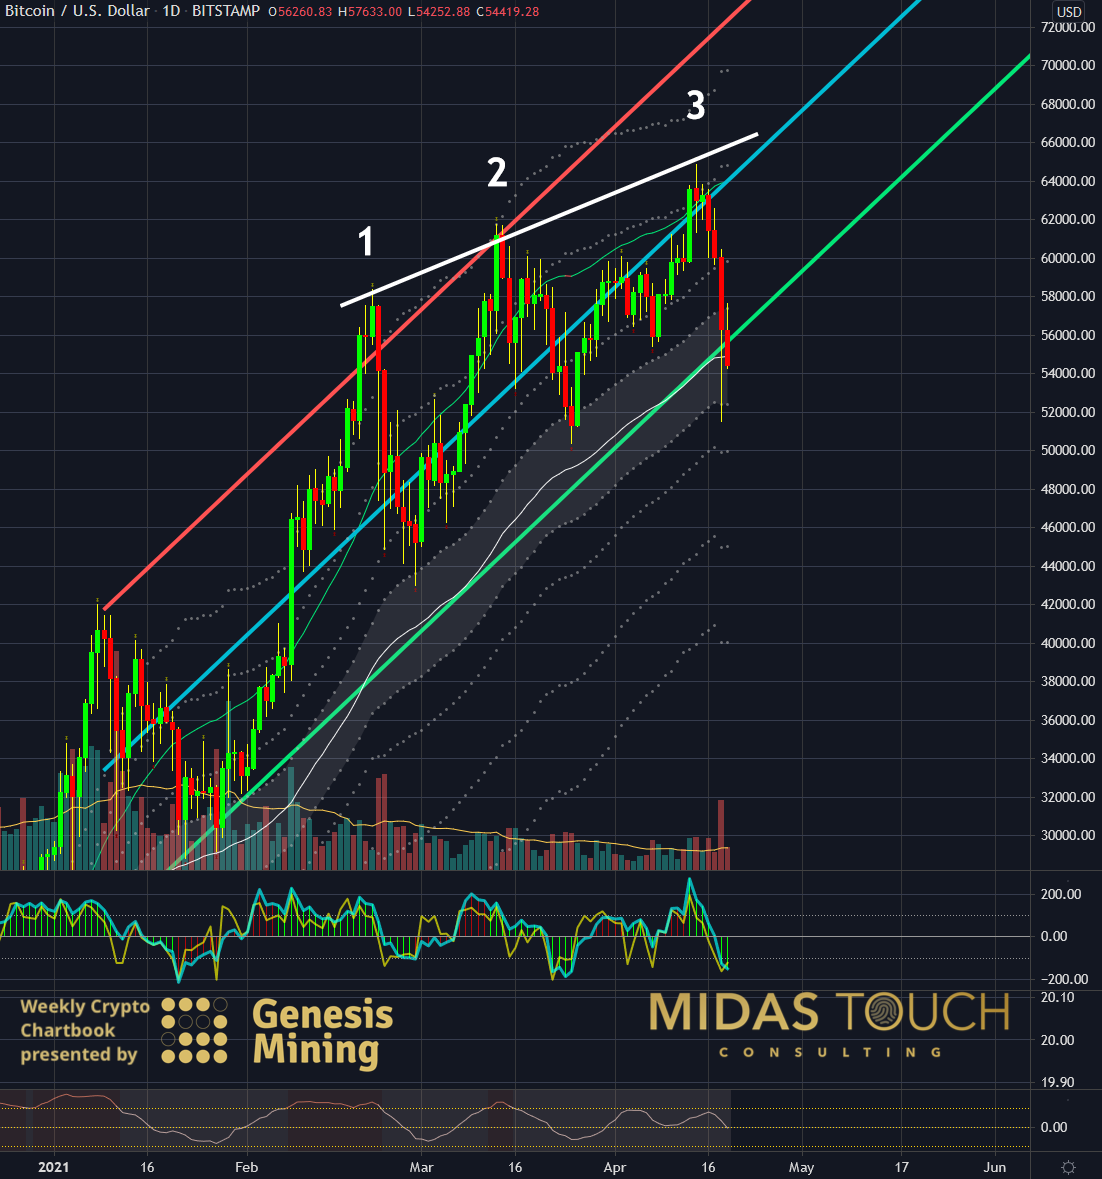 Bitcoin in US Dollar, daily chart as of April 19th, 2021. b